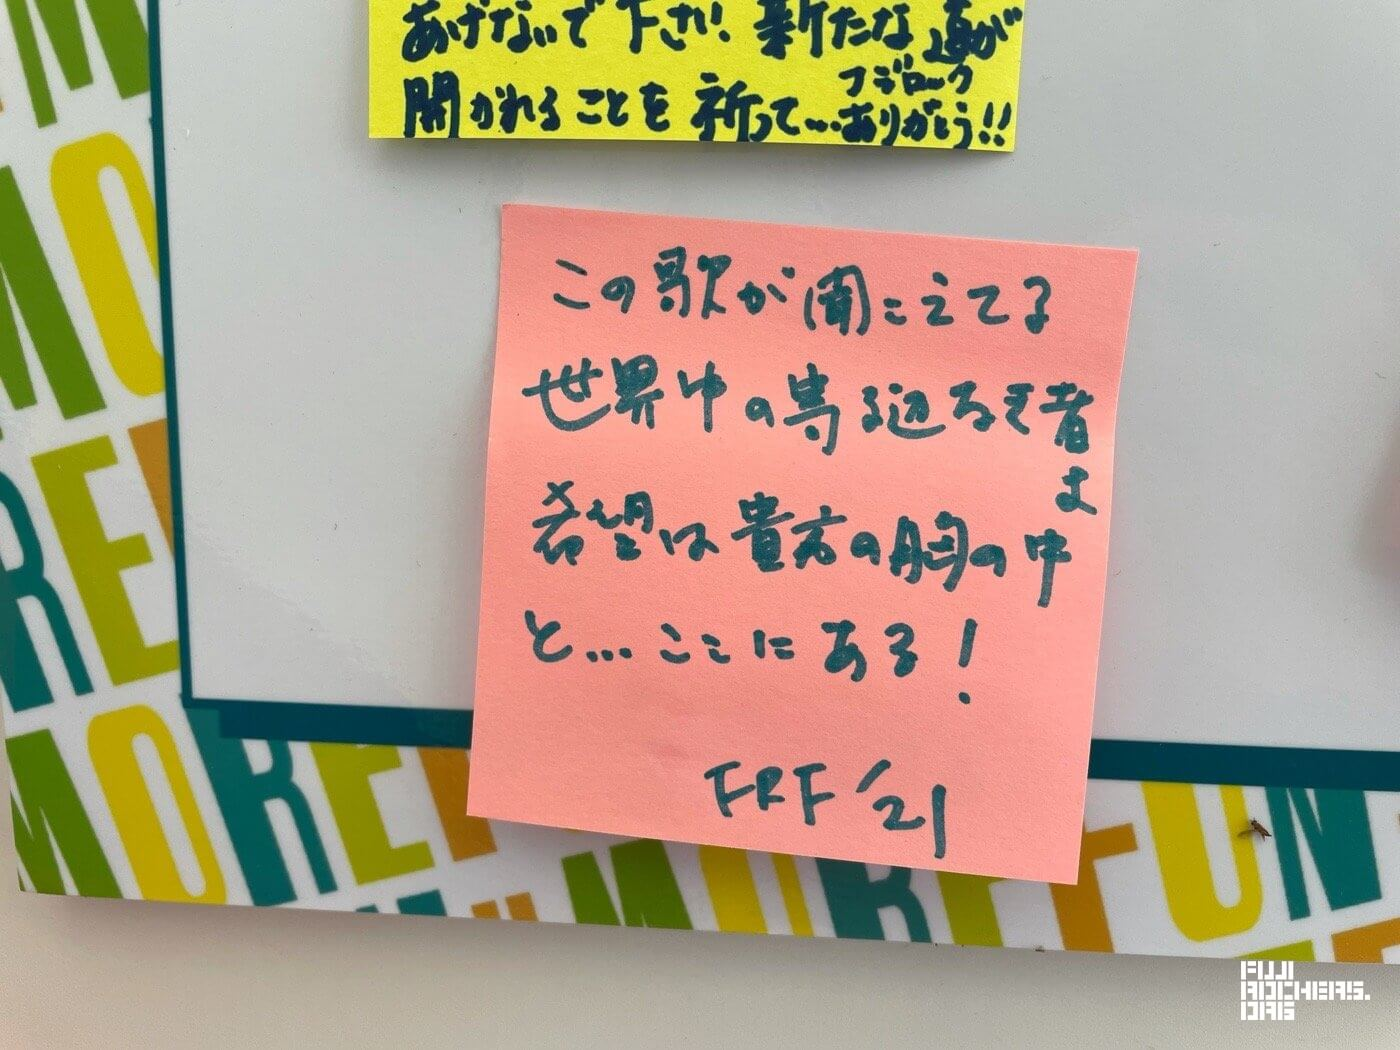 Message for FUJI ROCK #16